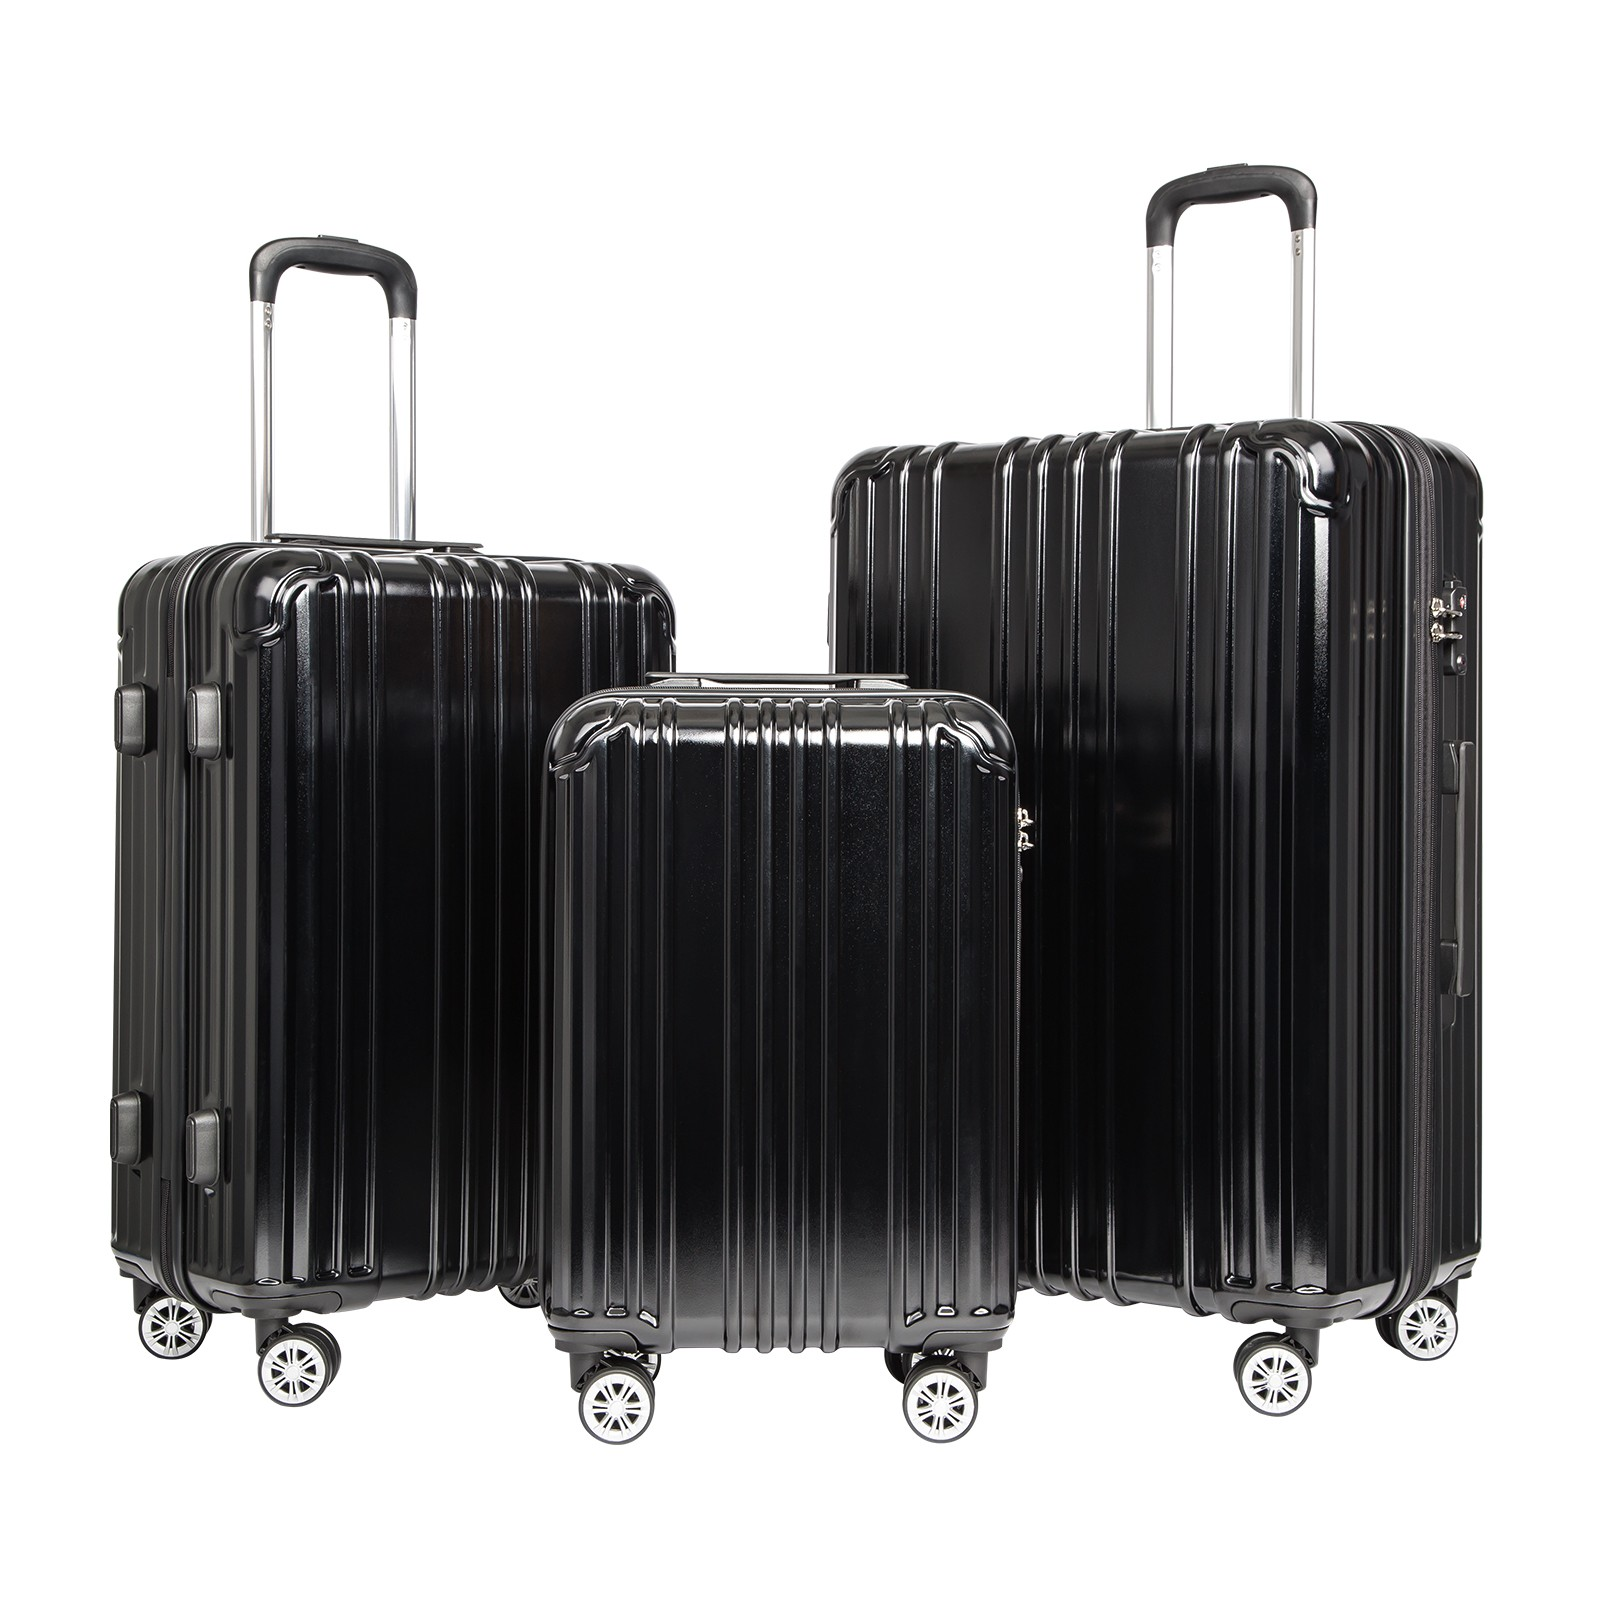 COOLIFE Luggage Expandable Suitcase PC+ABS 3 Piece Set with TSA Lock Spinner Carry on 20in24in28in(Black, 3 piece set)